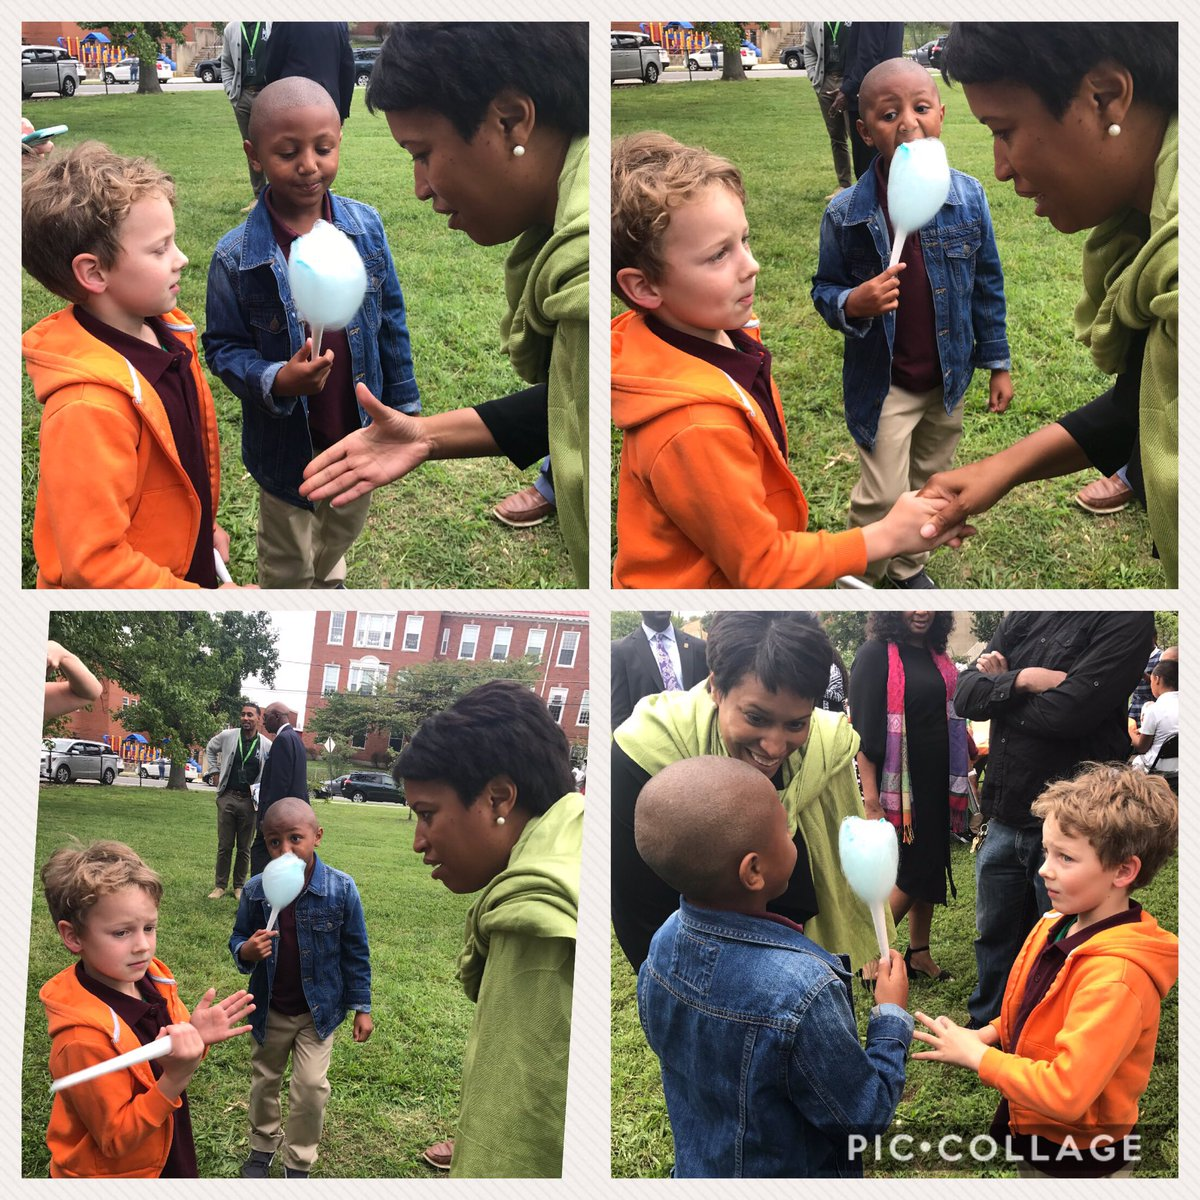 @MayorBowser speaking with Ownen and his BFF at the Coolidge groundbreaking #ward4proud #futurestudents #futureleaders #Coolidge @srfrjulie<br>http://pic.twitter.com/cx2KOIeEQB